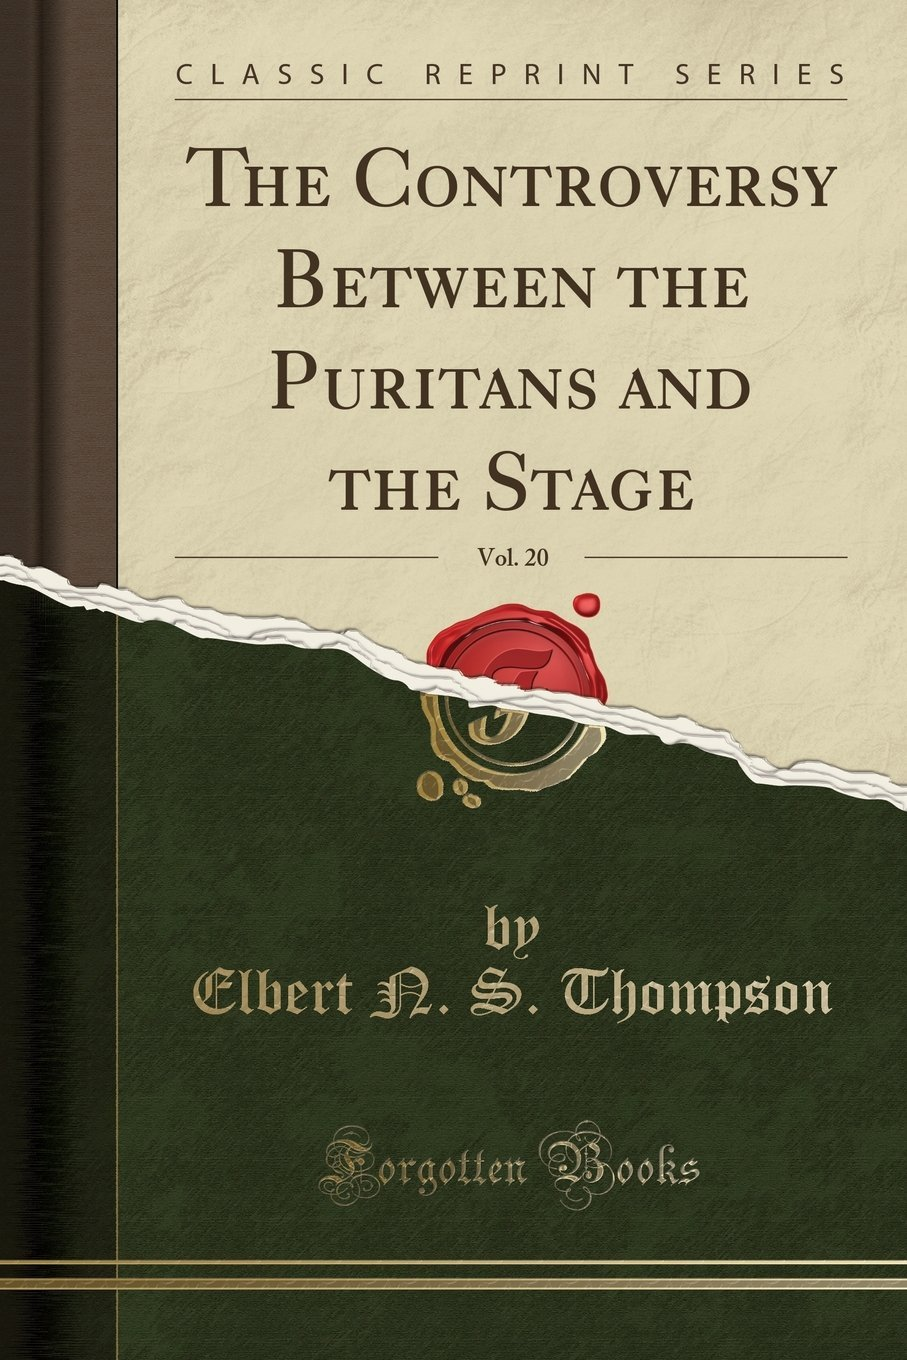 The Controversy Between the Puritans and the Stage, Vol. 20 (Classic Reprint) pdf